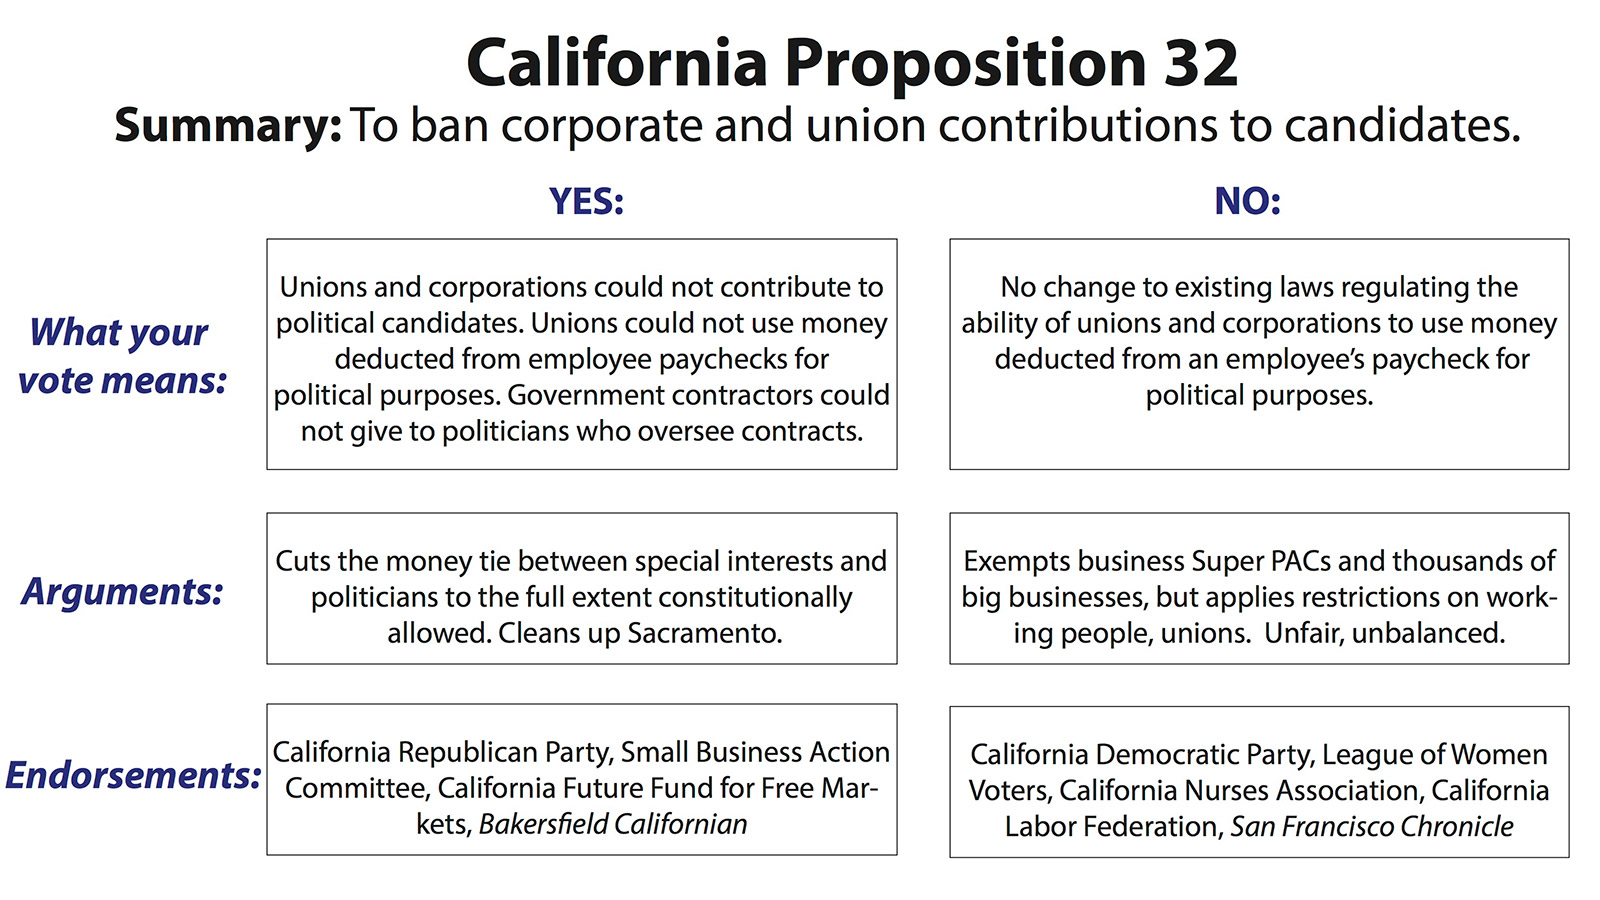 Measure to Outlaw Corporate, Union Political Contributions